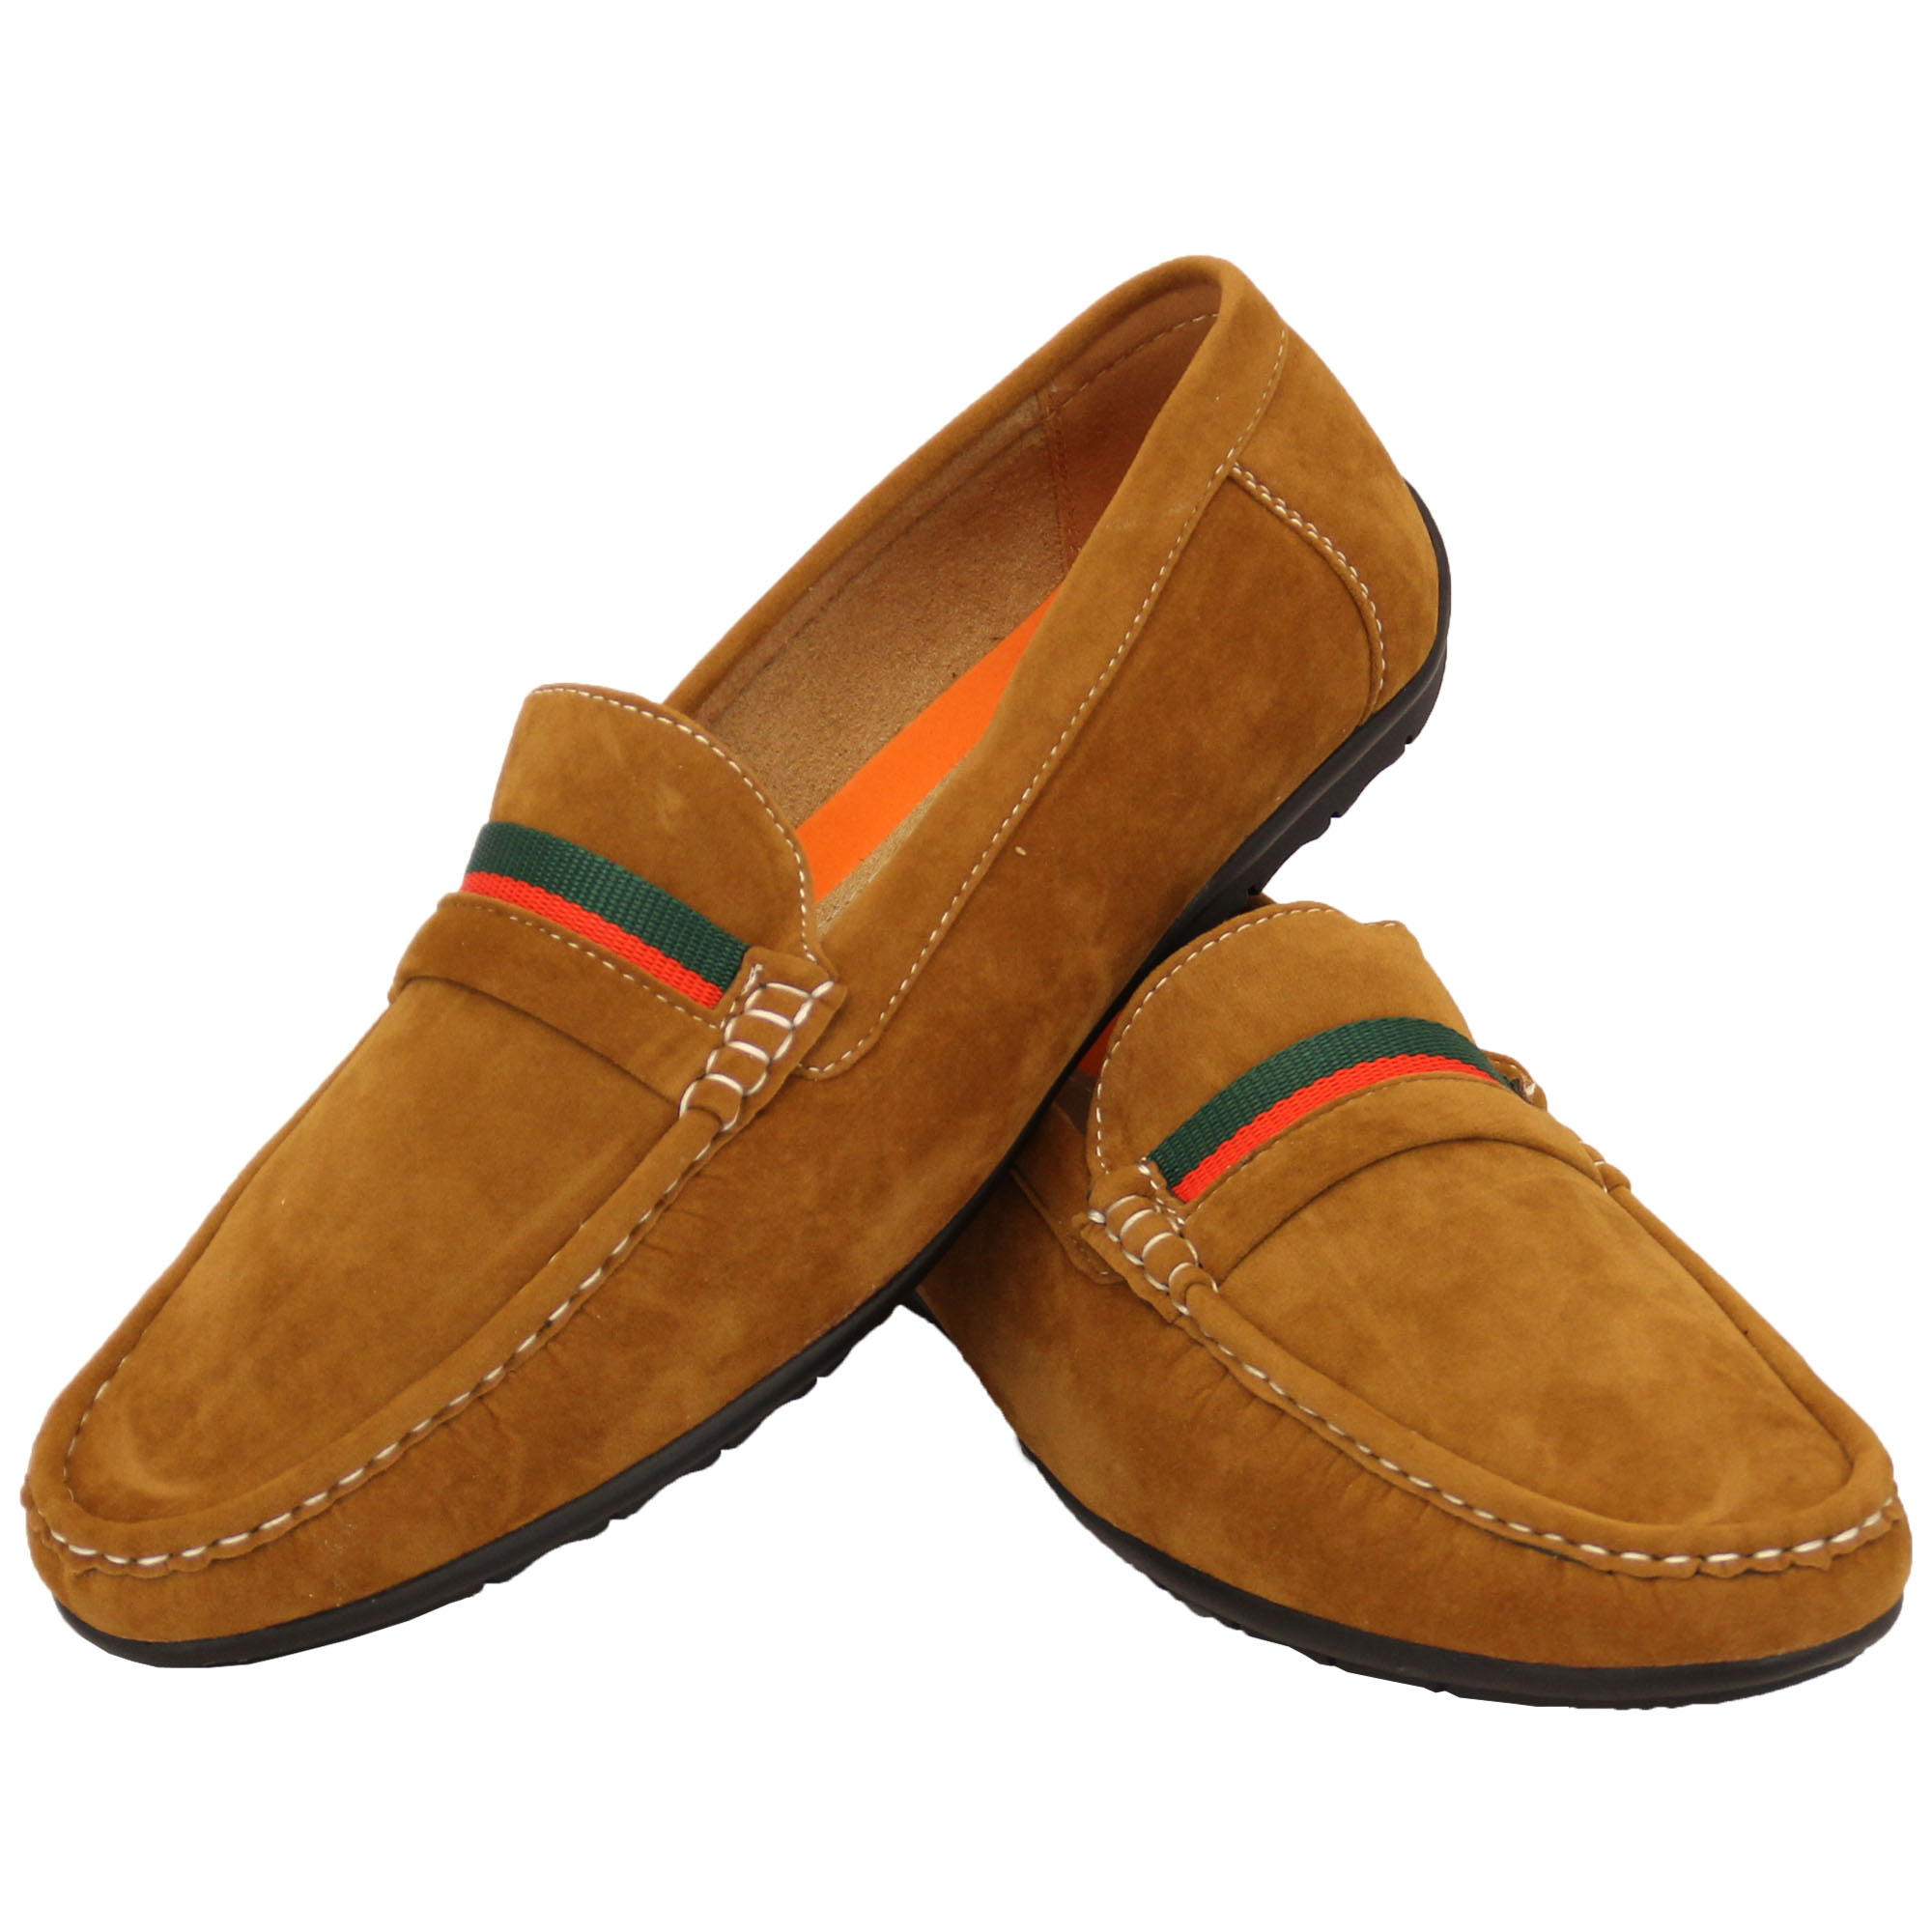 Mens-Moccasins-Suede-Look-Driving-Loafers-Slip-On-Boat-Shoes-Ribbon-Tassle-New thumbnail 10